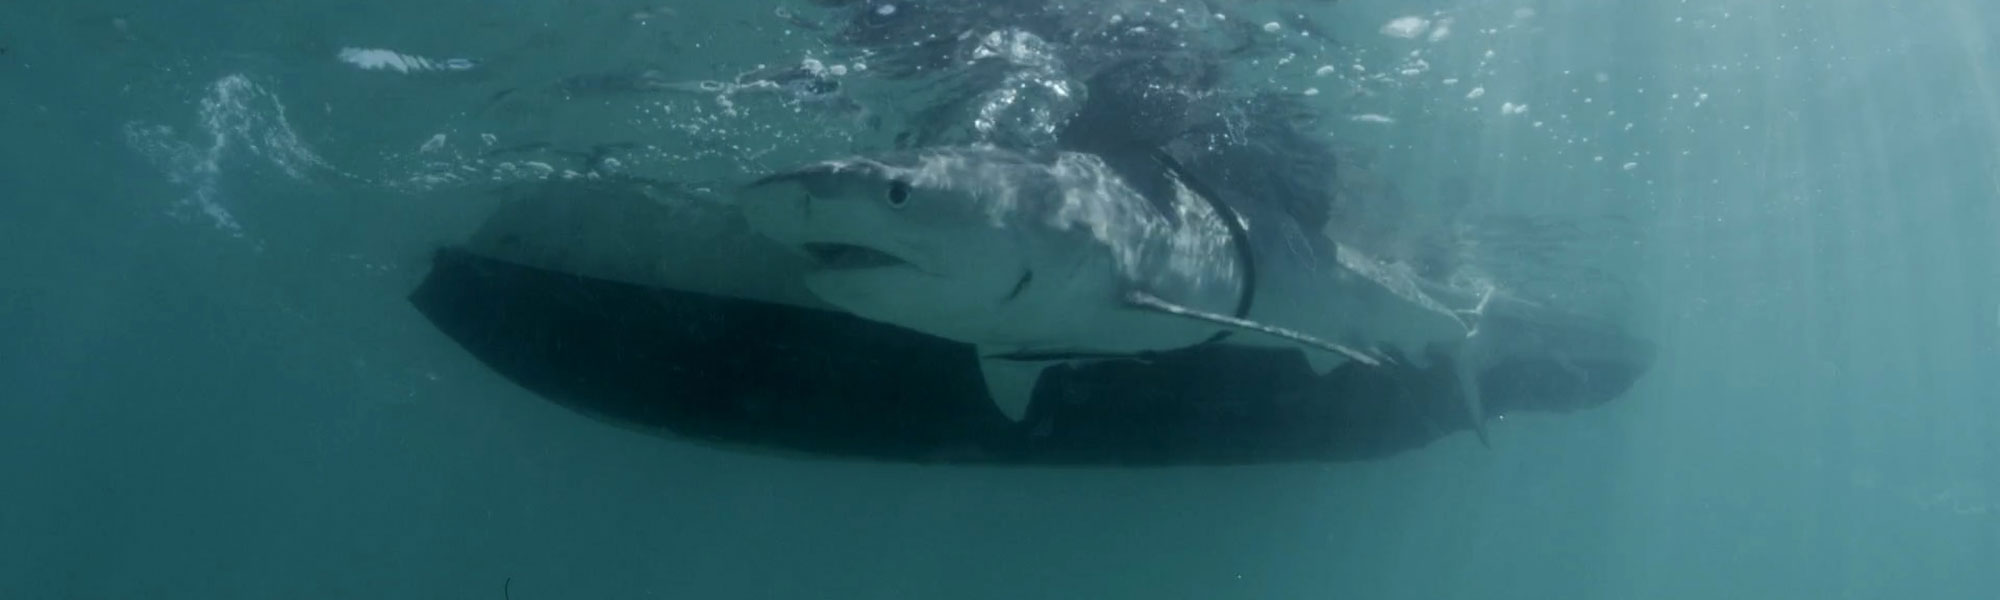 Biopixel Oceans Foundation Adds Several Tiger Sharks to OCEARCH Tracker